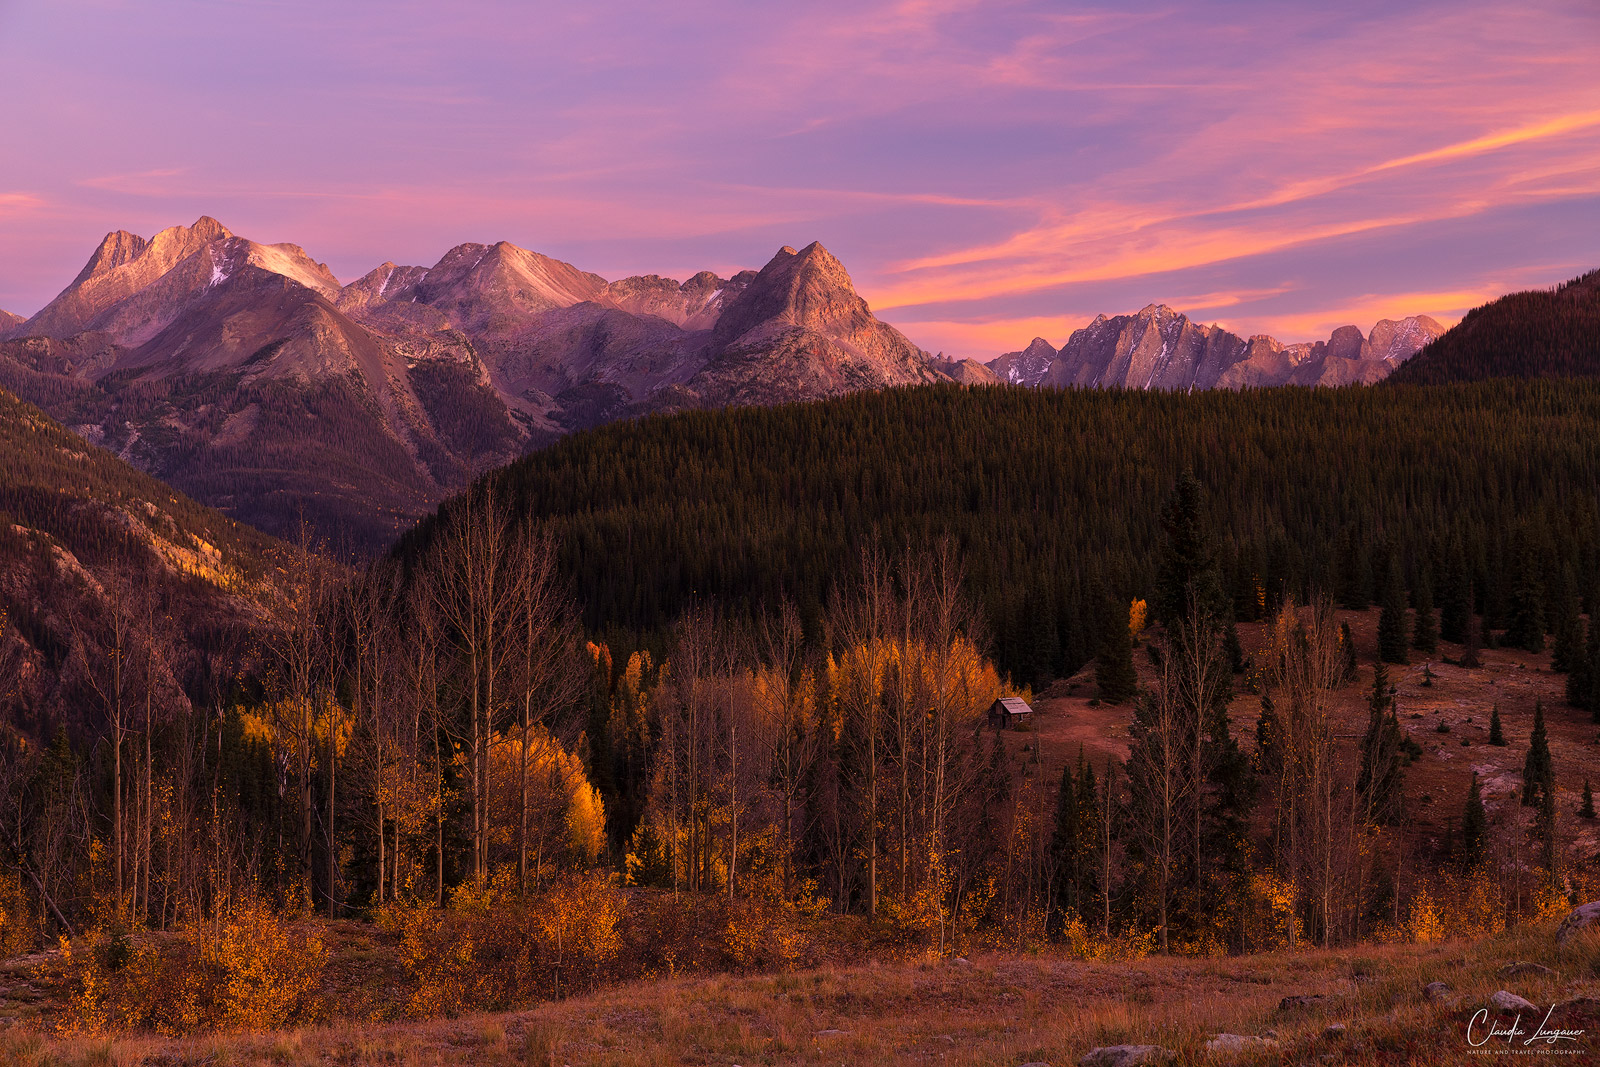 Sunset above the San Juan Mountains on the Million Dollar Highway in Colorado.